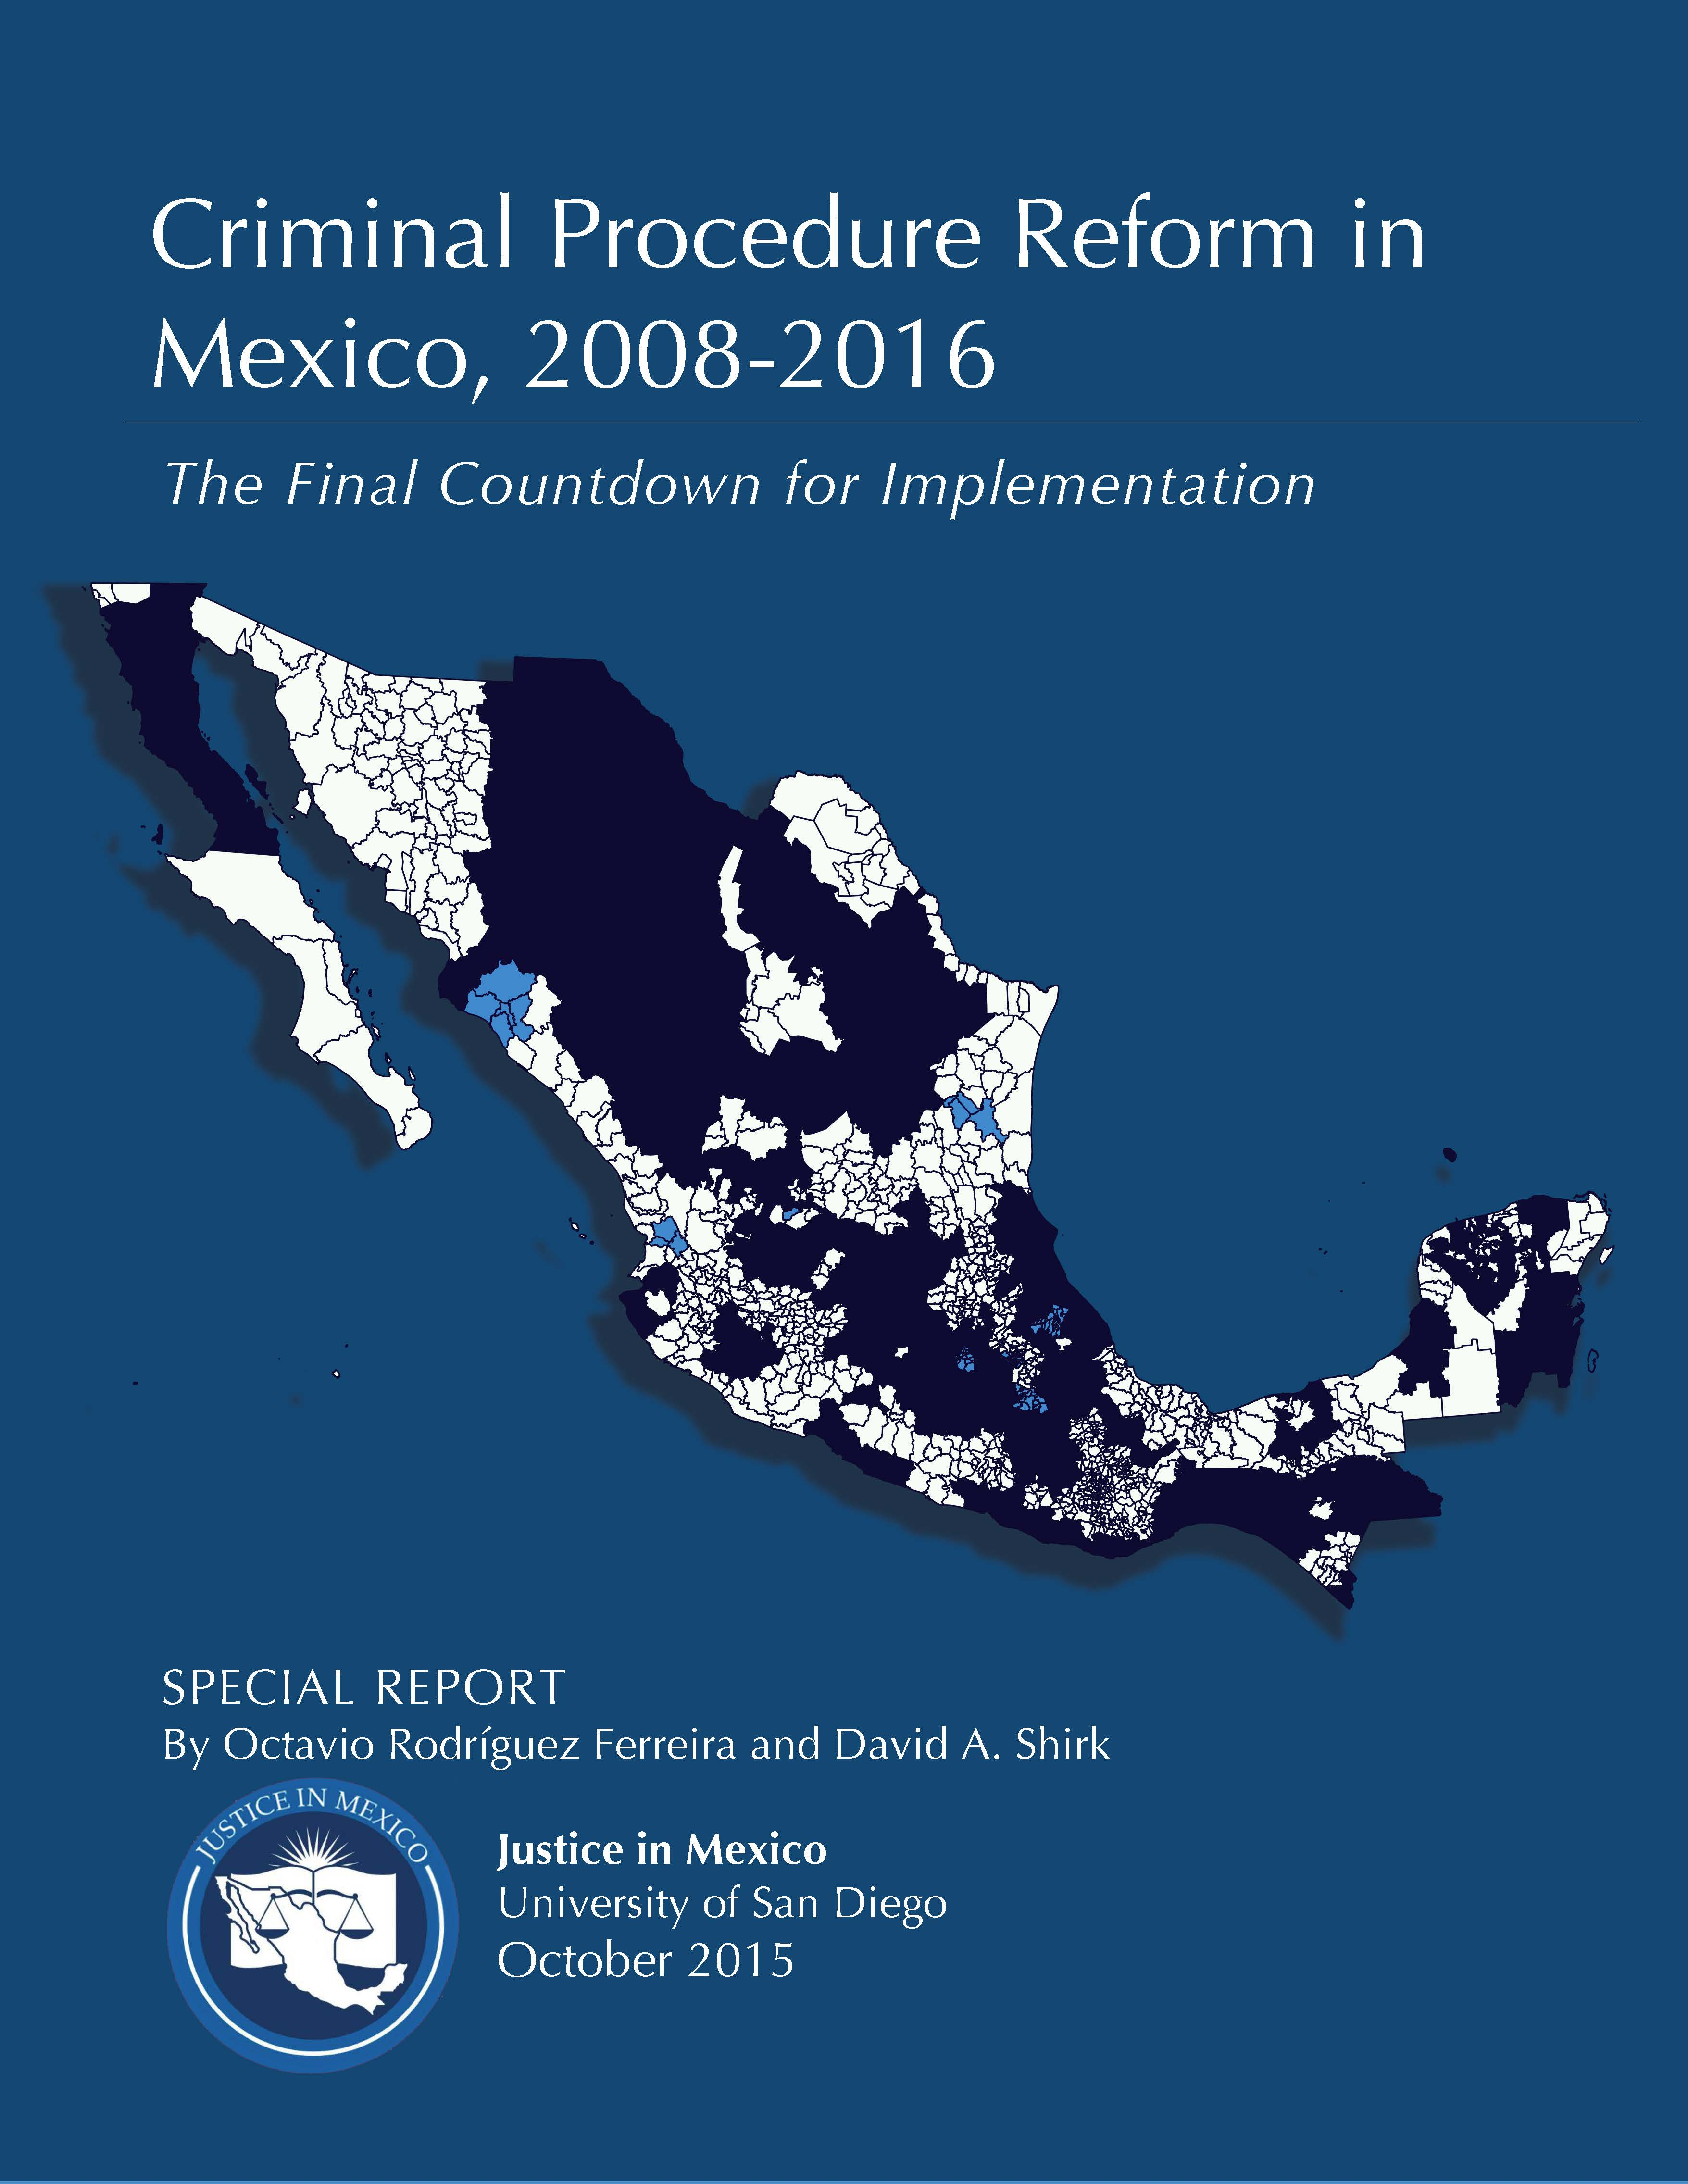 the bourbon reforms in mexico essay The mexican independence movement against the spanish monarchy was led by the bourbon reforms, and the loss of the spanish kingdom to the french.